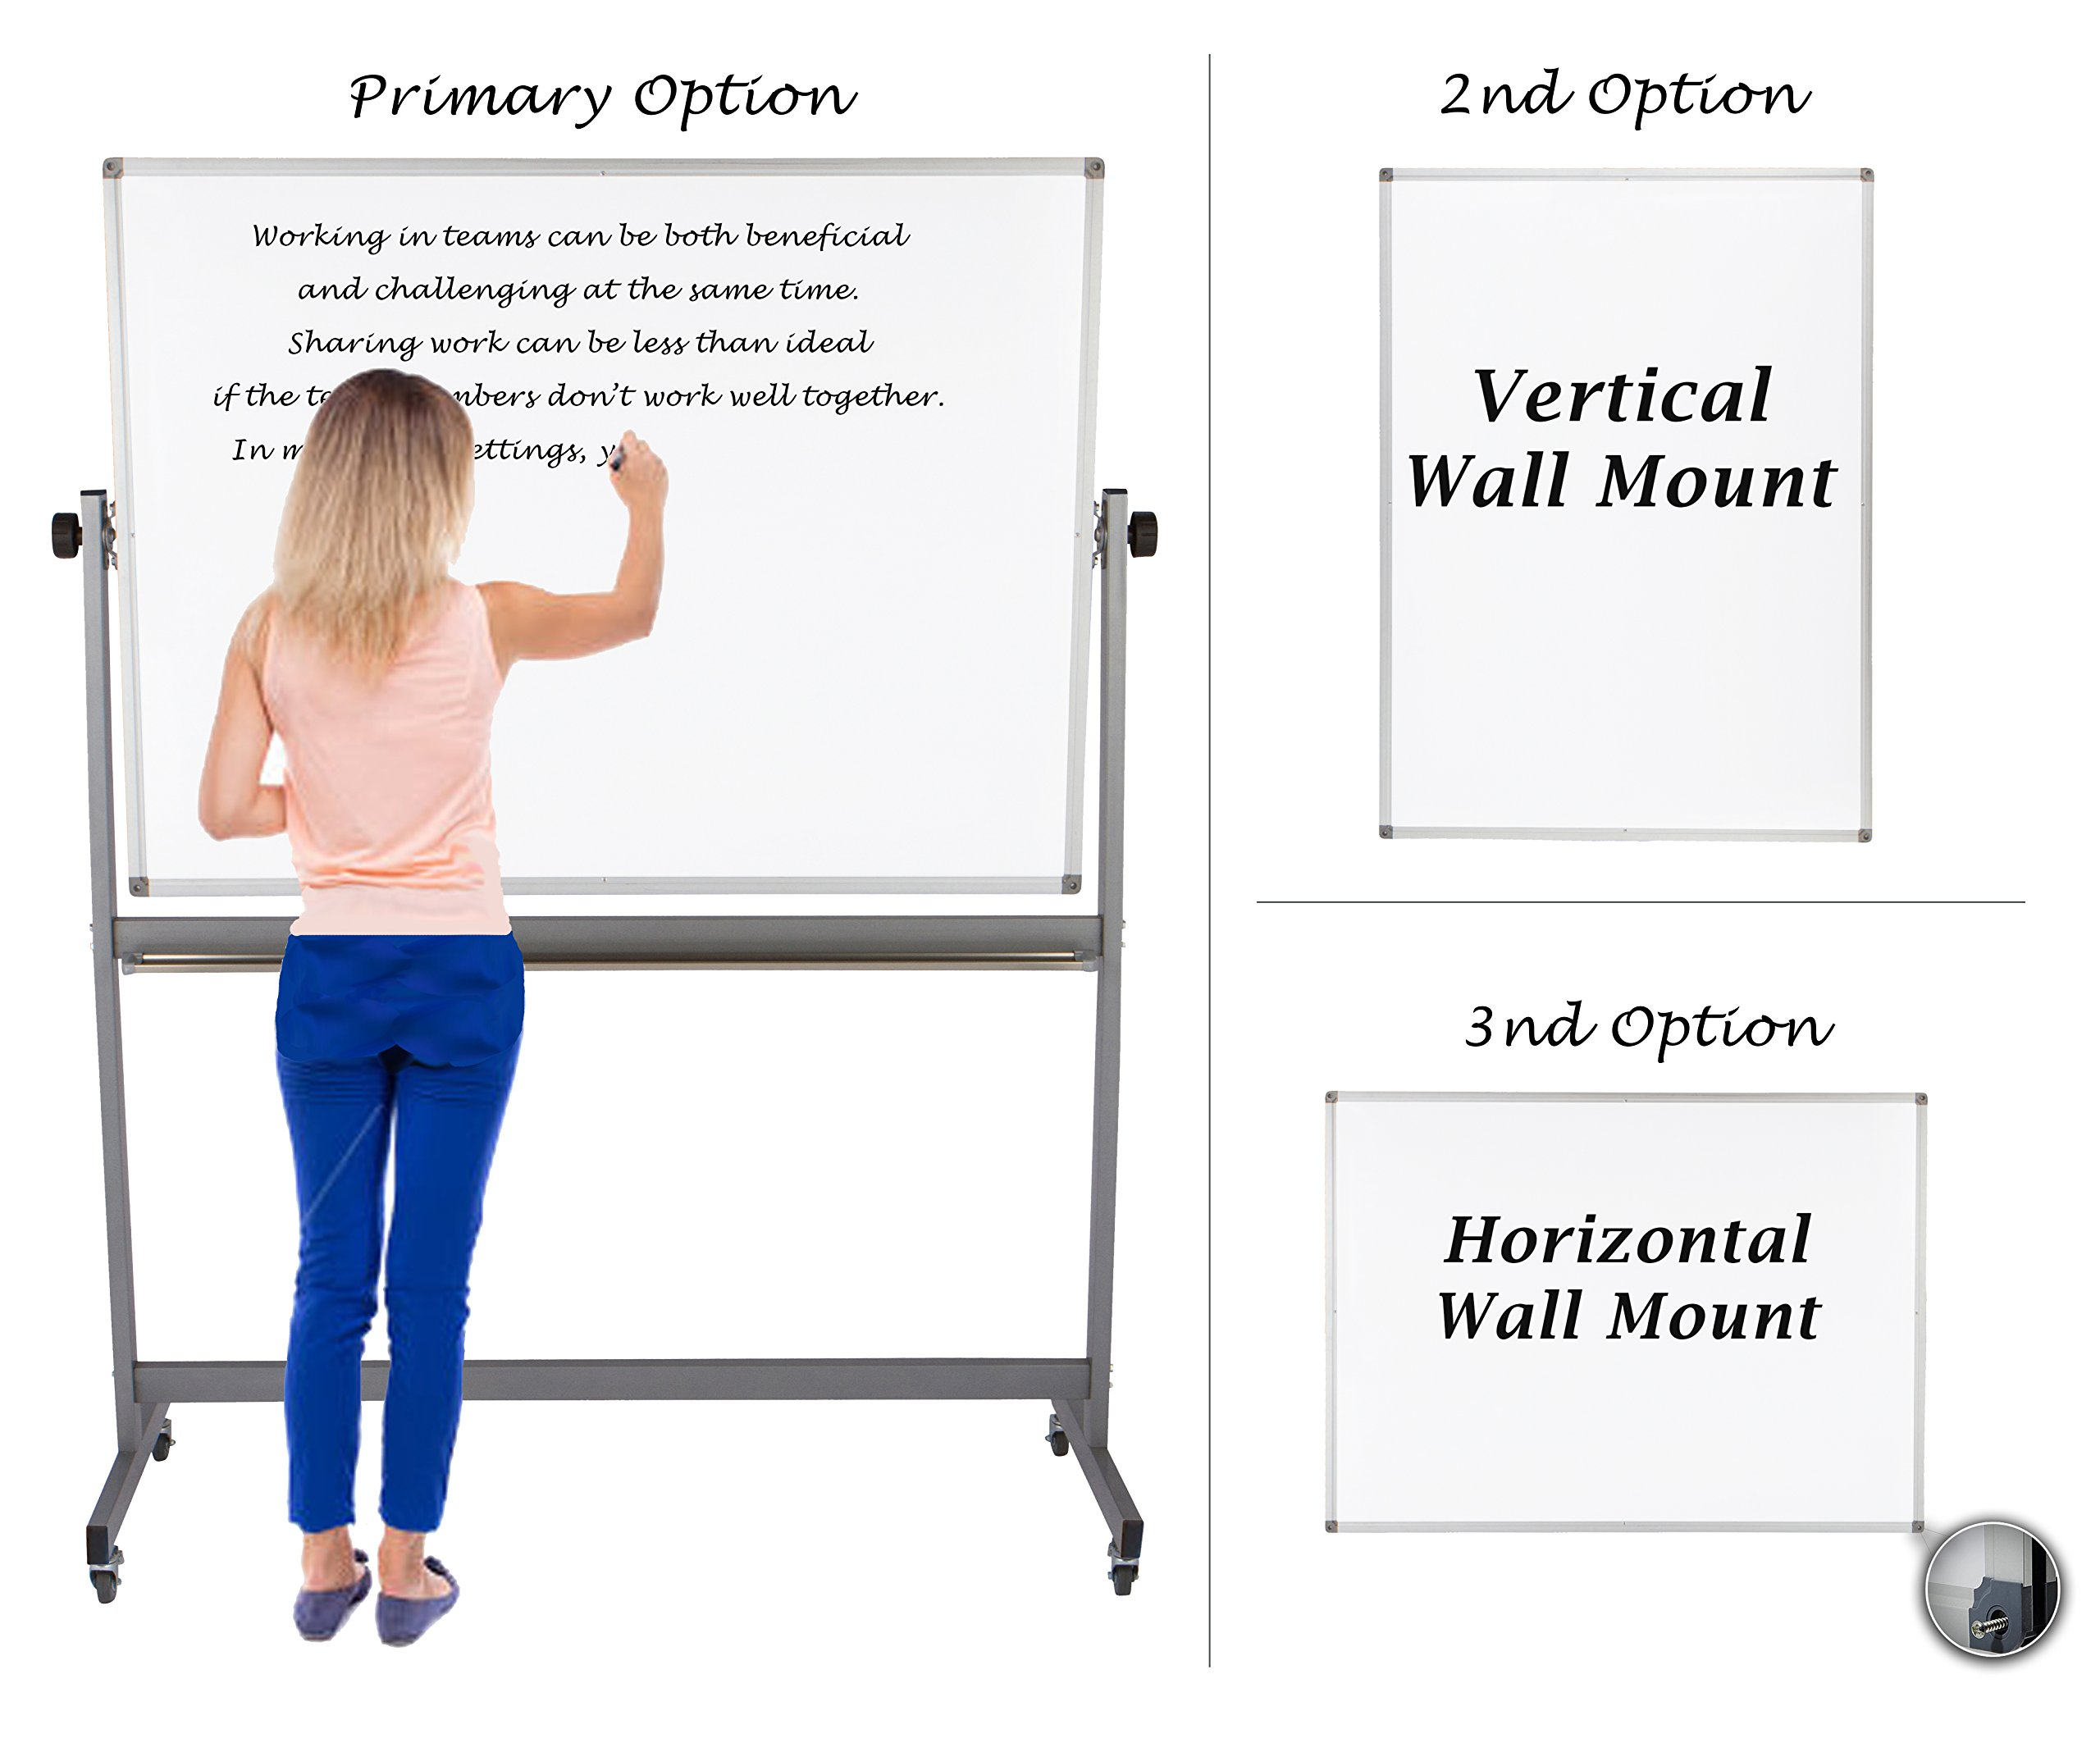 "Magnetic Mobile Whiteboard Large On Stand Double Sided Flip Over Dry Erase Reversible Portable Home Office Classroom Board 36 x 48"" Inch with 4 Markers 12 Magnets Eraser and Ruler Easel Aluminum Frame by Dapper Display (Image #5)"